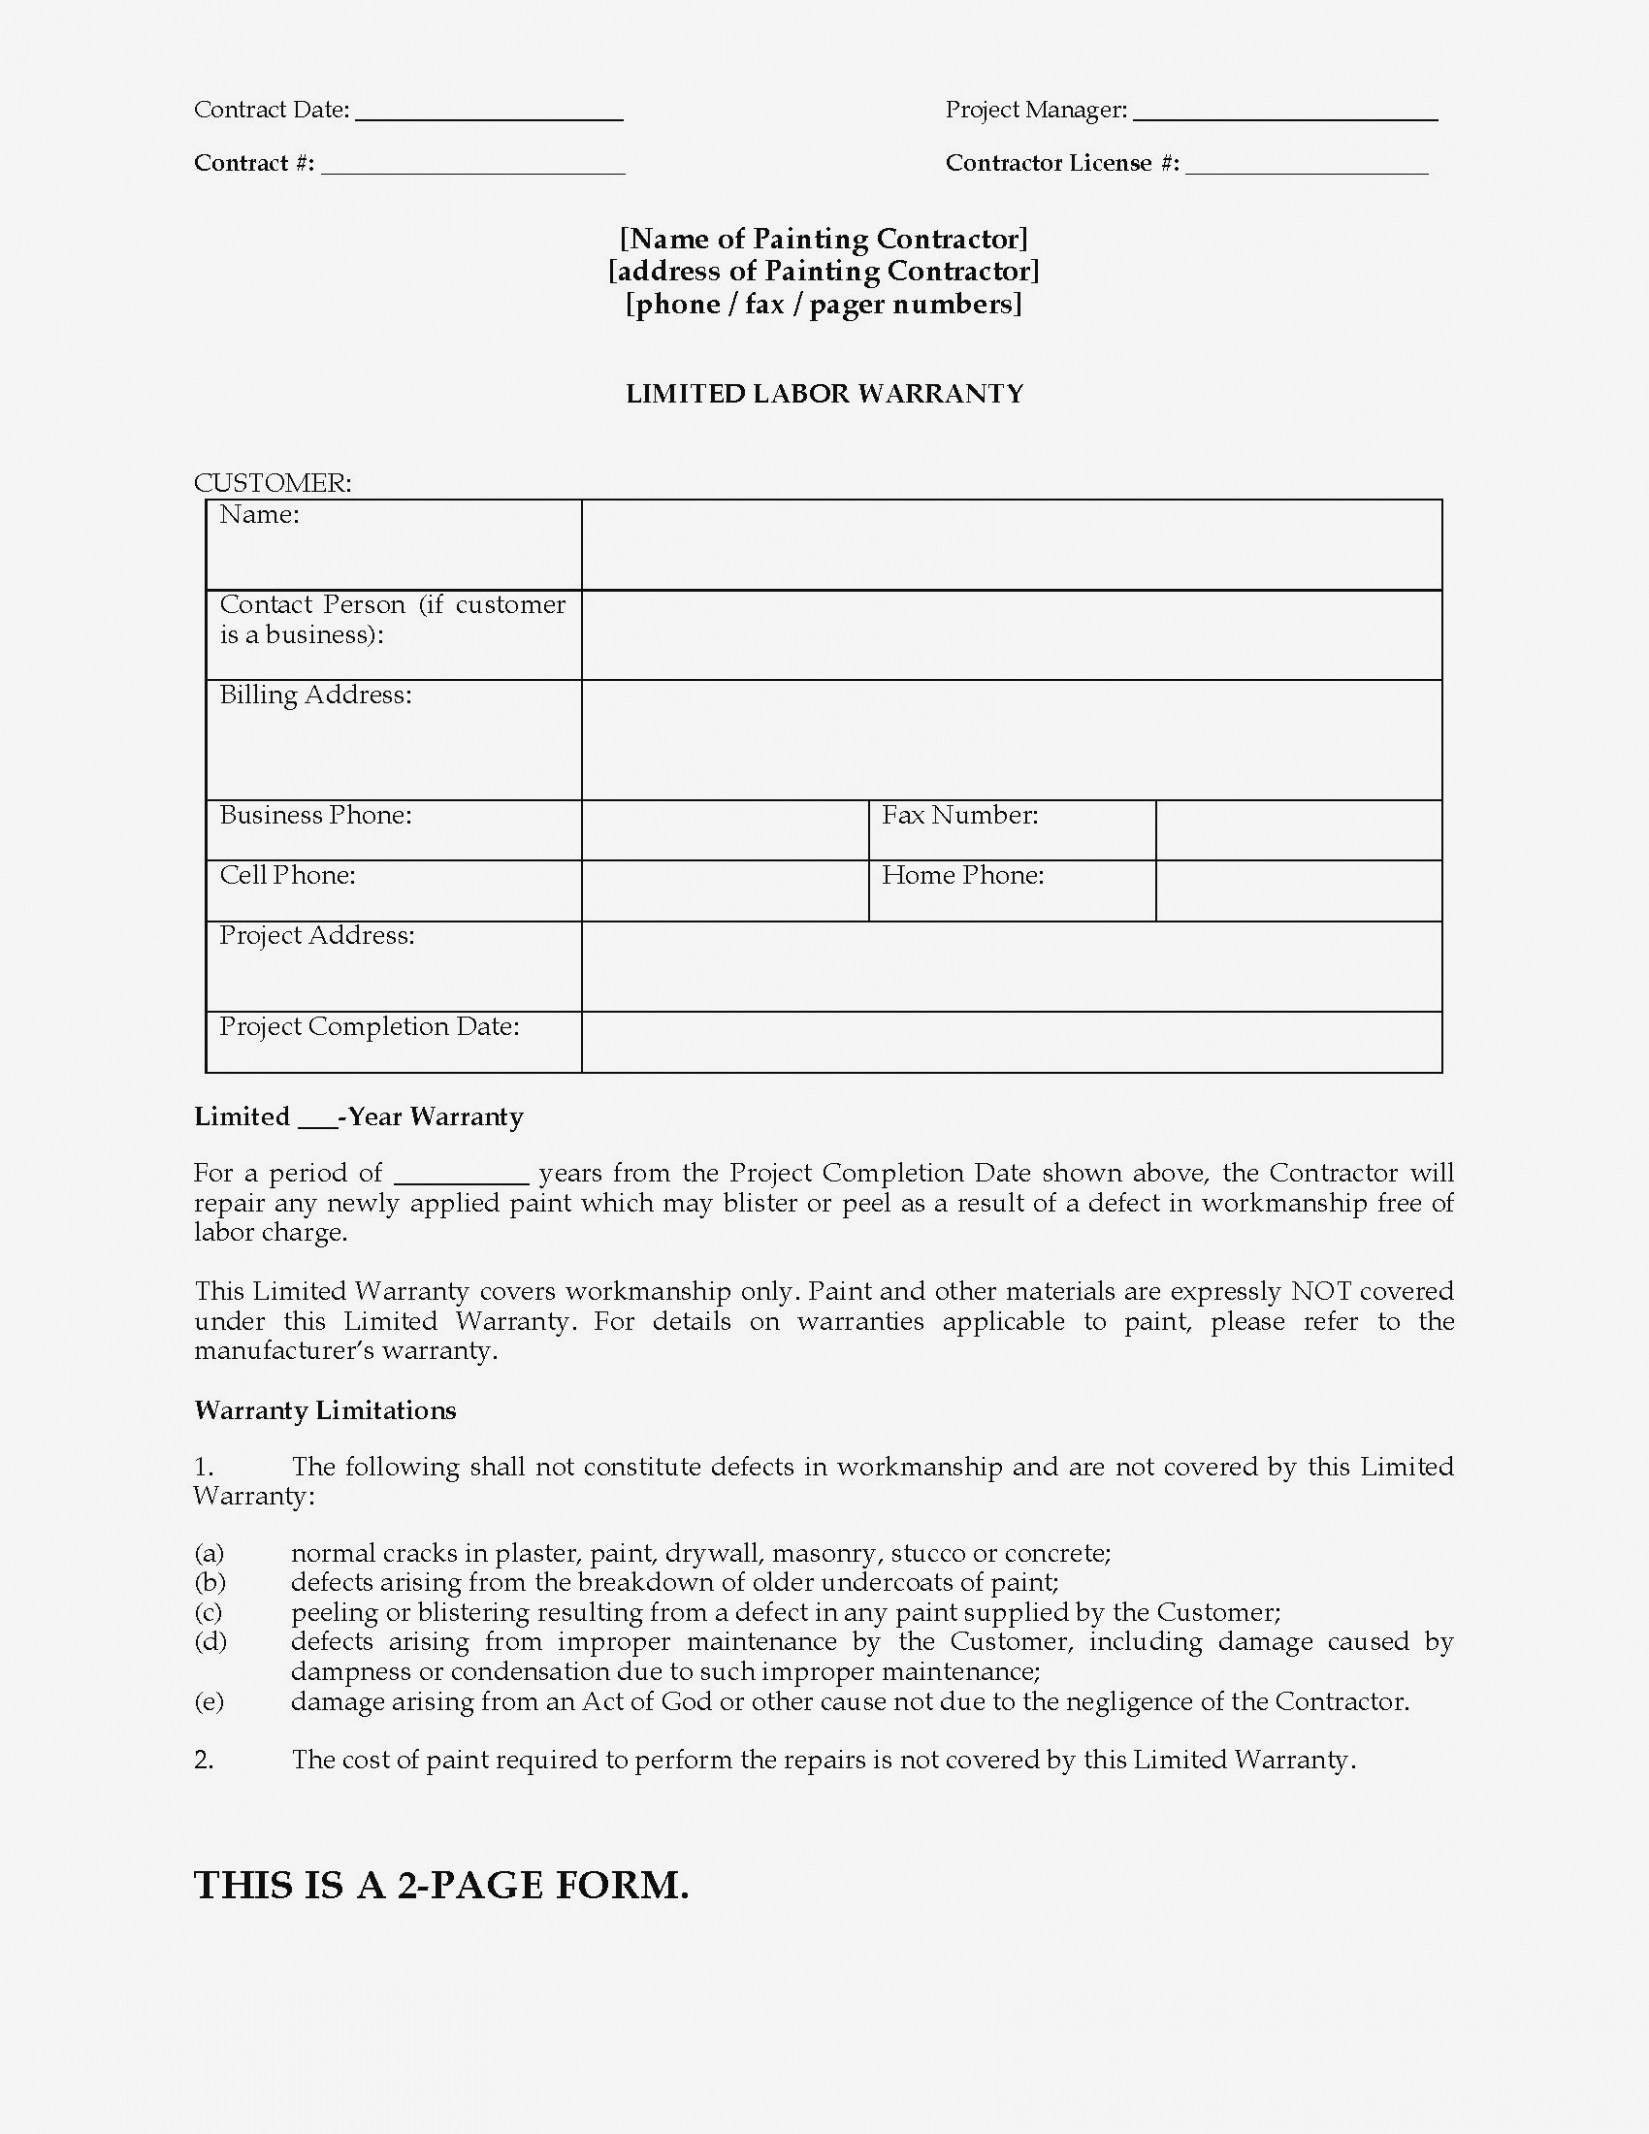 Construction Joint Check Agreement Form Elegant Painting Limited Pertaining To Joint Check Agreement Template